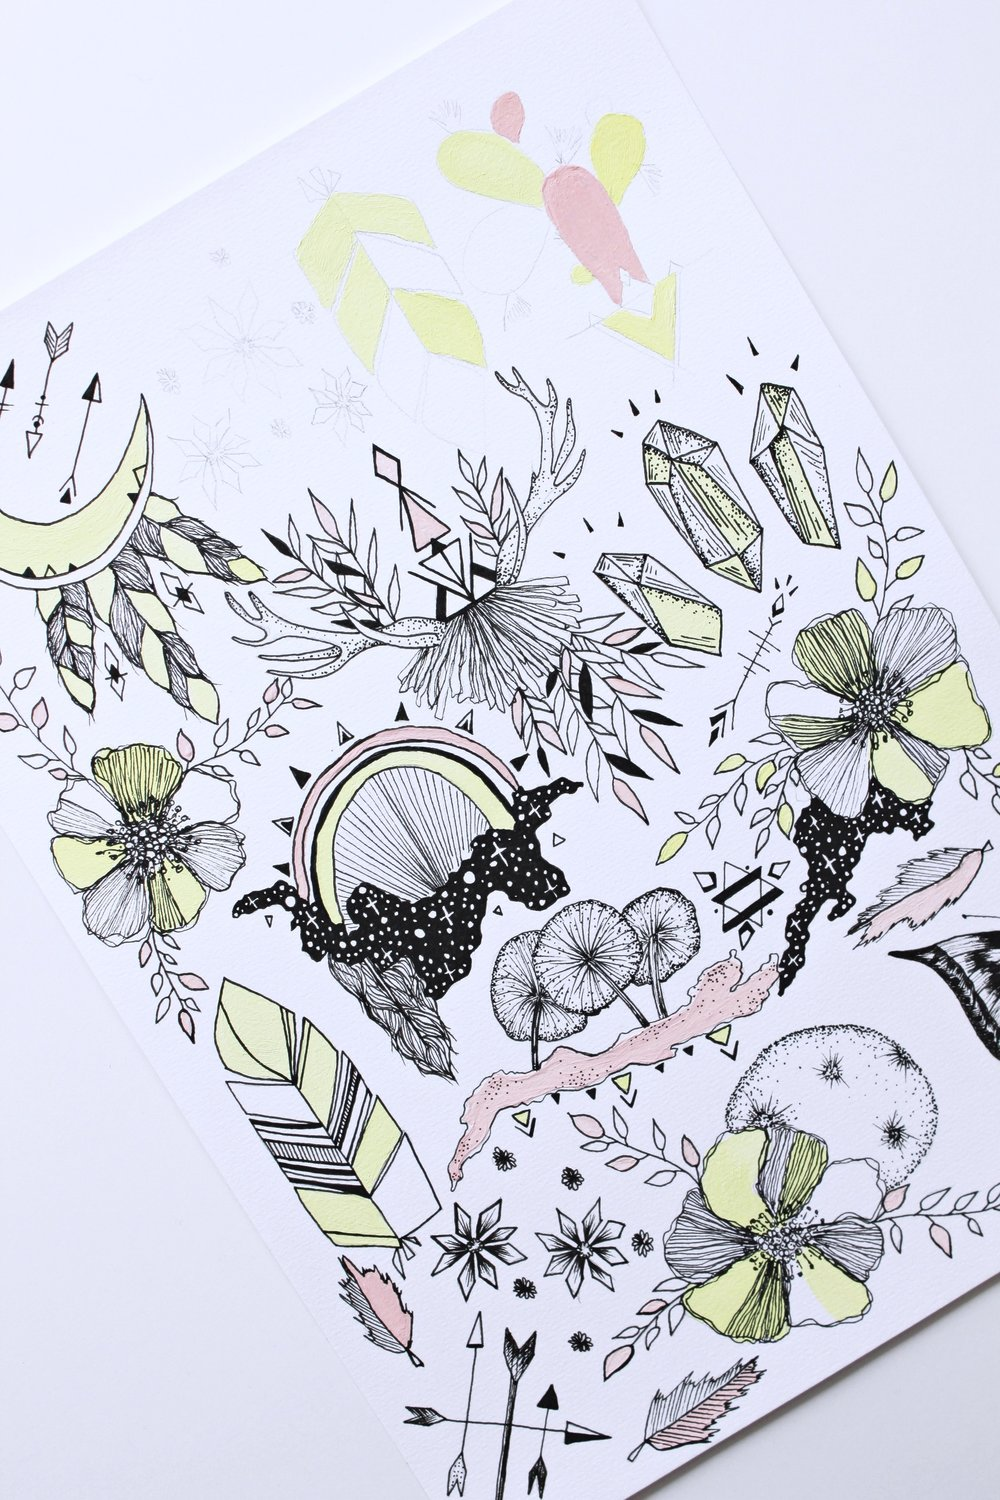 Drawing a colorful flash sheet with black pen and paints. Flowers, feathers and other symbolic details.